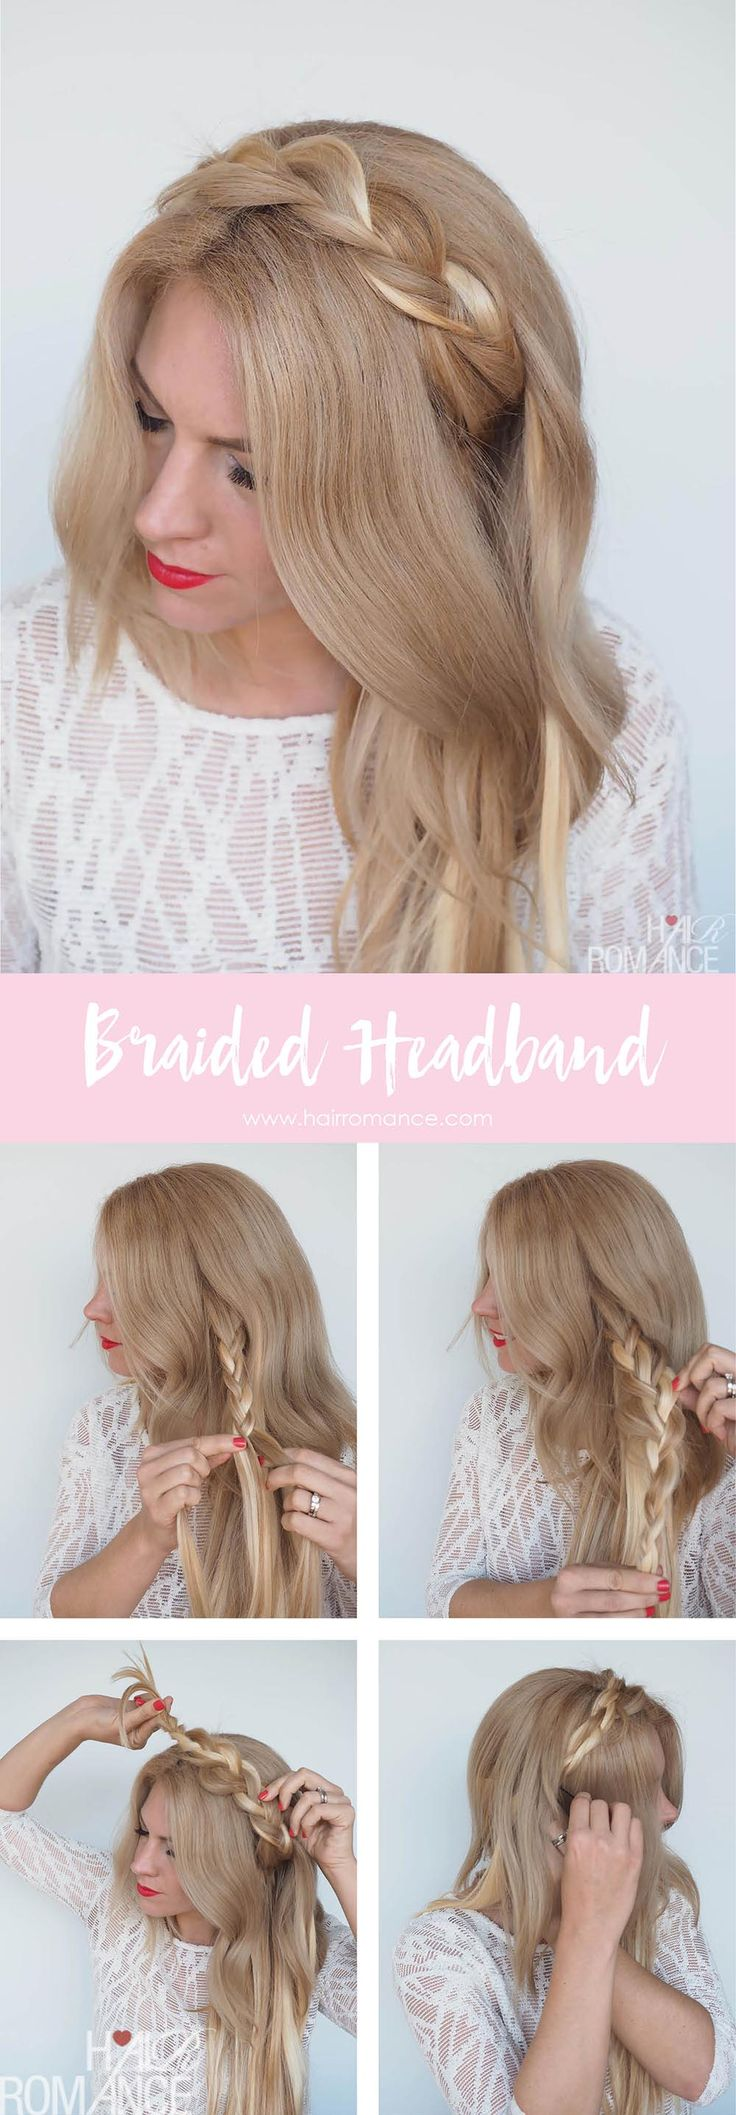 I always say that your hair is your best accessory, but what about a hairstyle where your hair is the accessory? This quick and easy braided headband hairstyle tutorial makes your own hair into a headband. This style is best suited to long hair, or you can cheat like I have. How to get long...Read More »